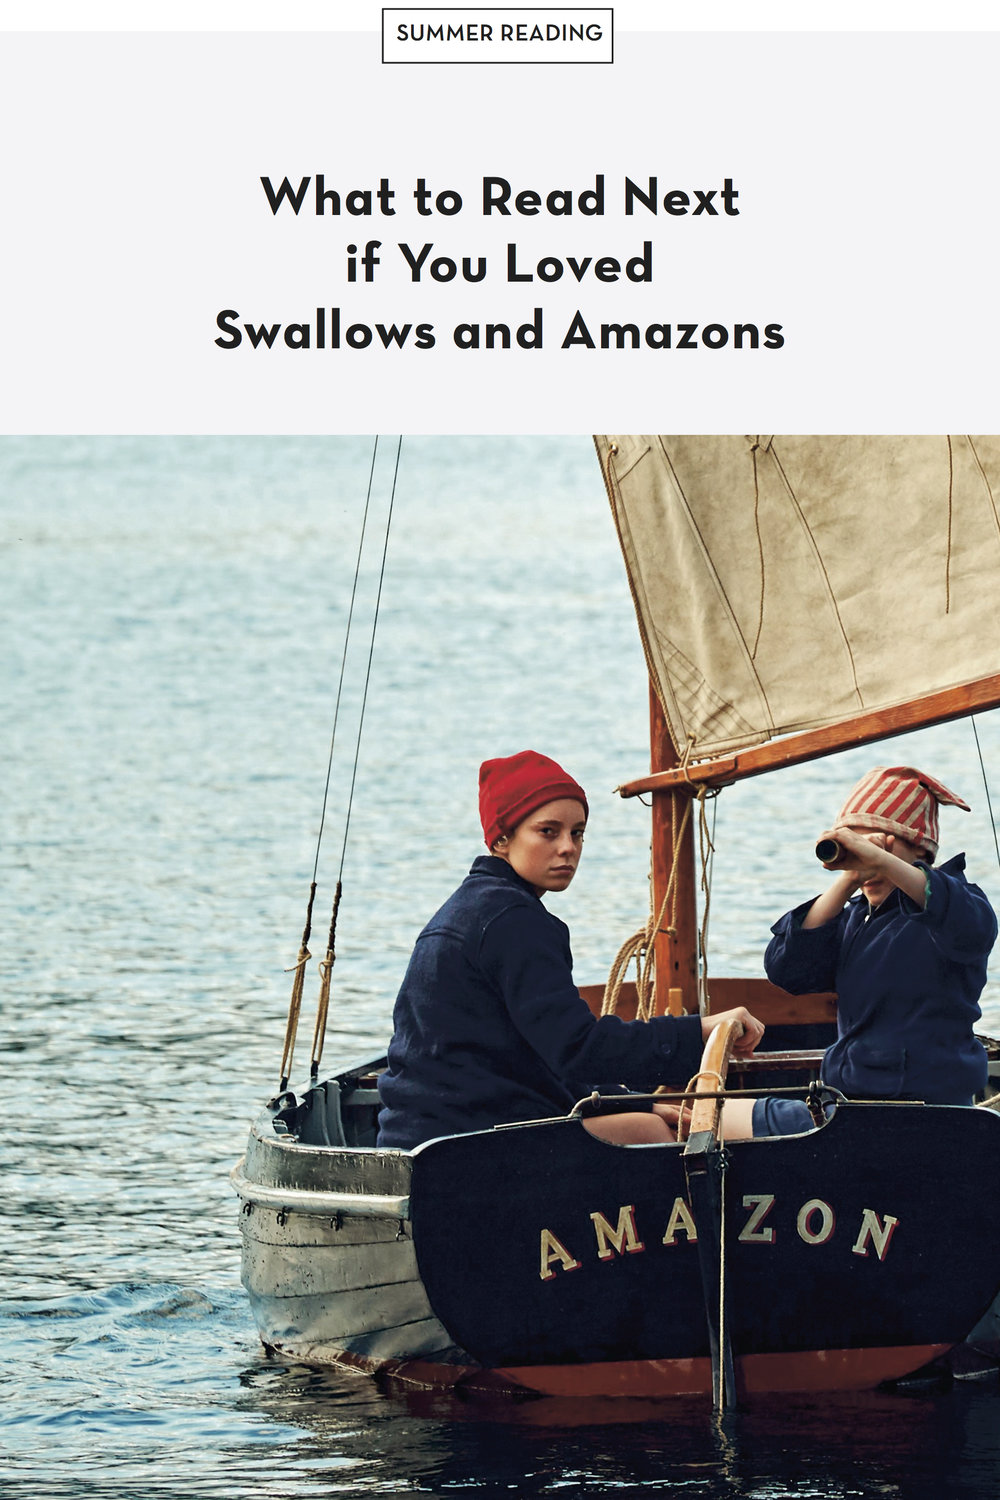 What to read next if you loved Swallows and Amazons